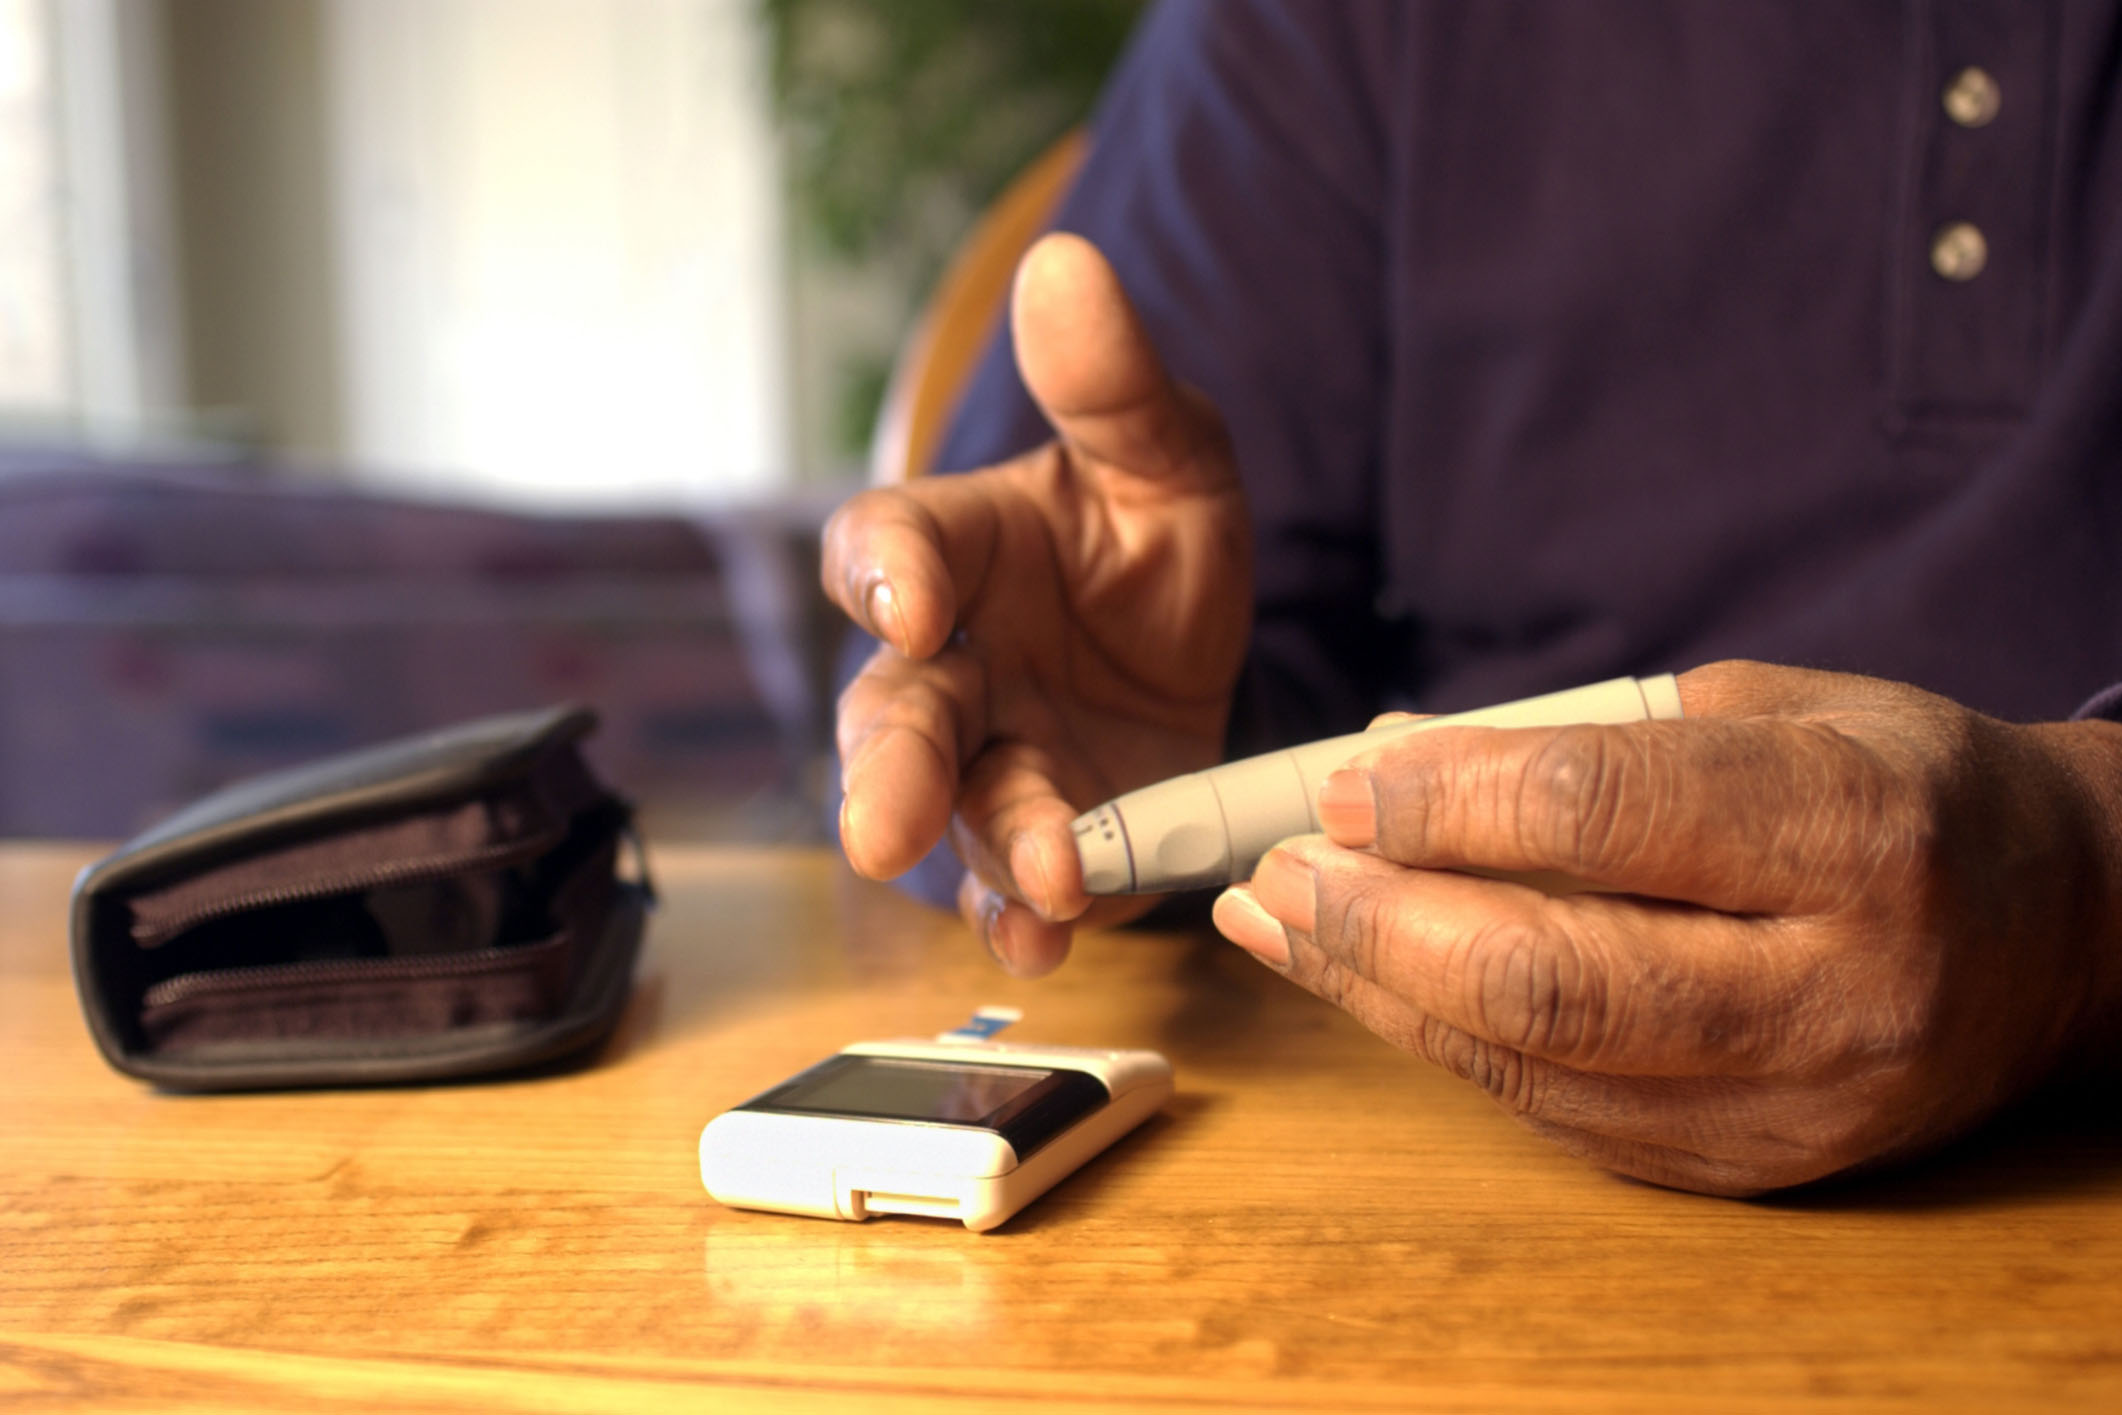 Blood Sugar Control For Diabetes Asking The Heart Questions – NIH